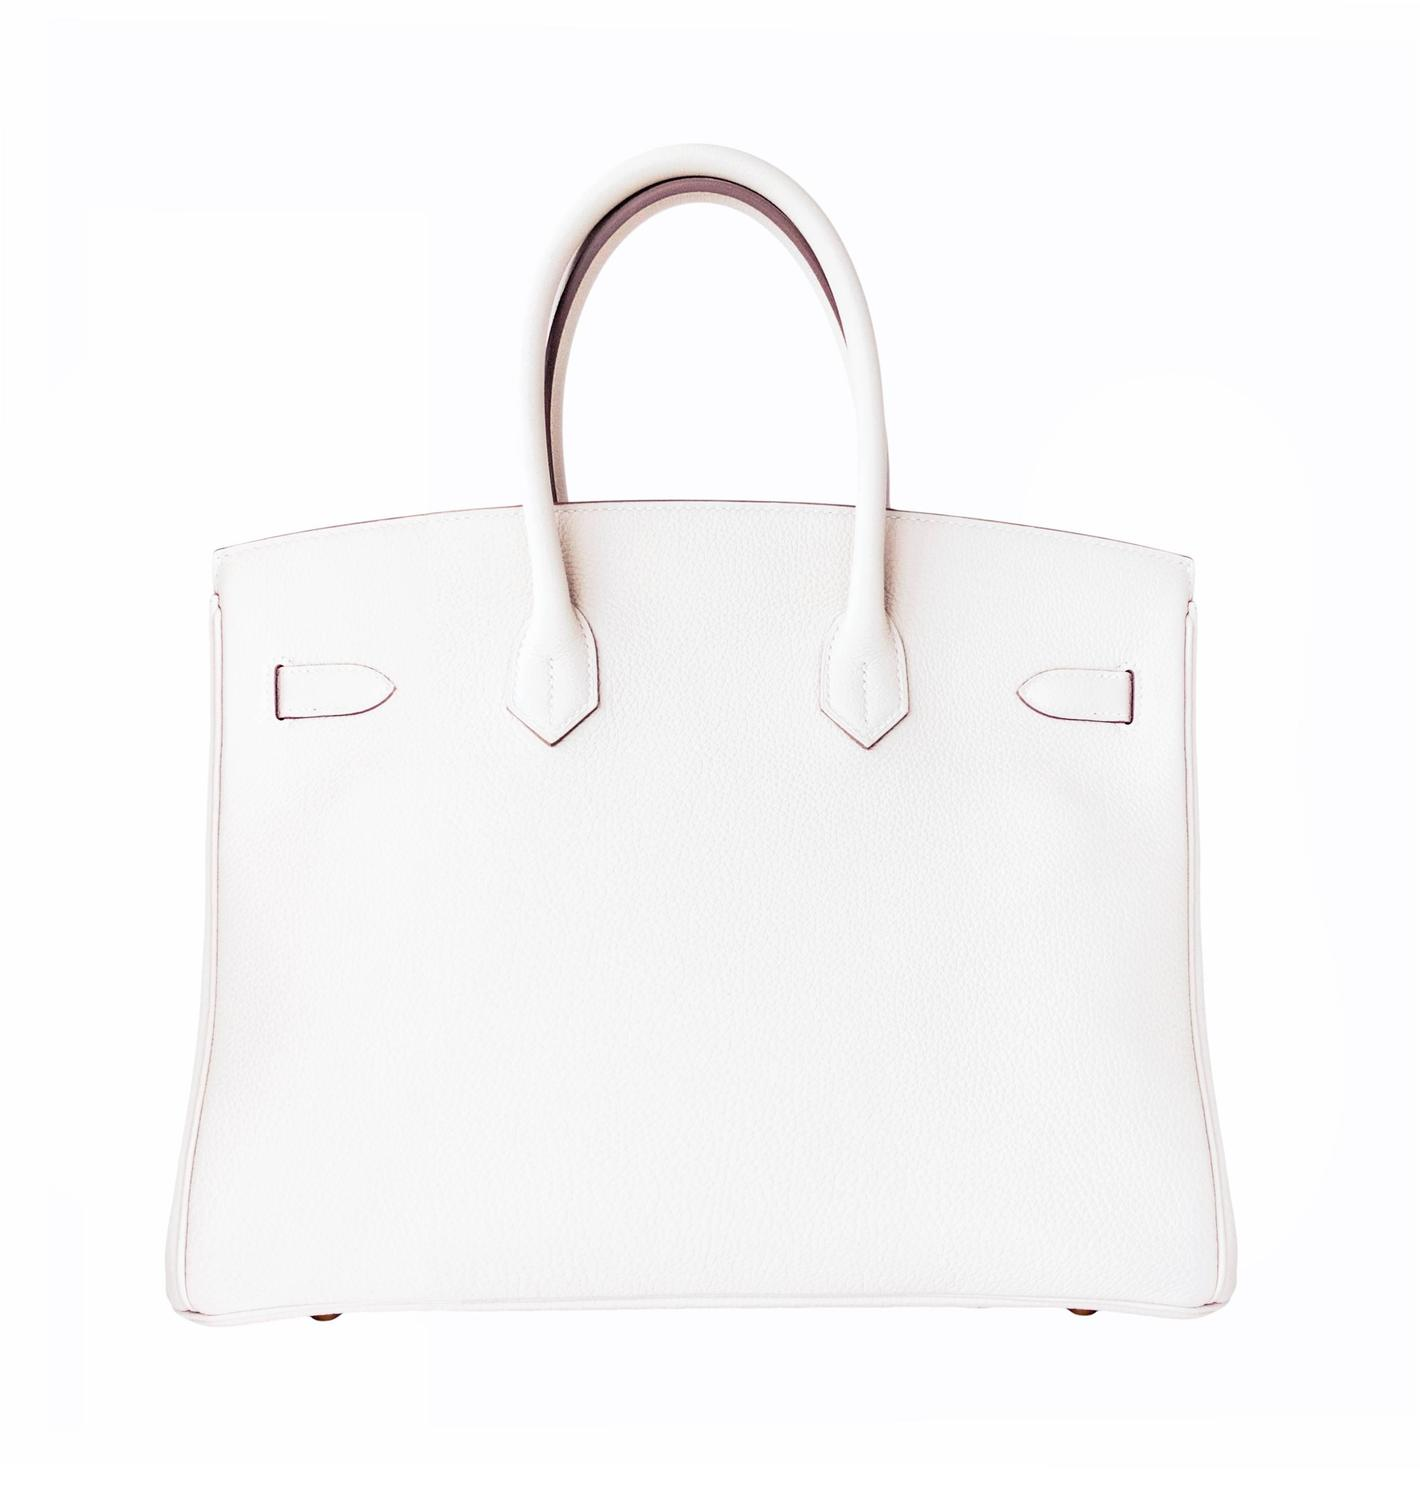 birkin style leather bag - hermes birkin bag 35cm craie togo palladium hardware, hermes ...